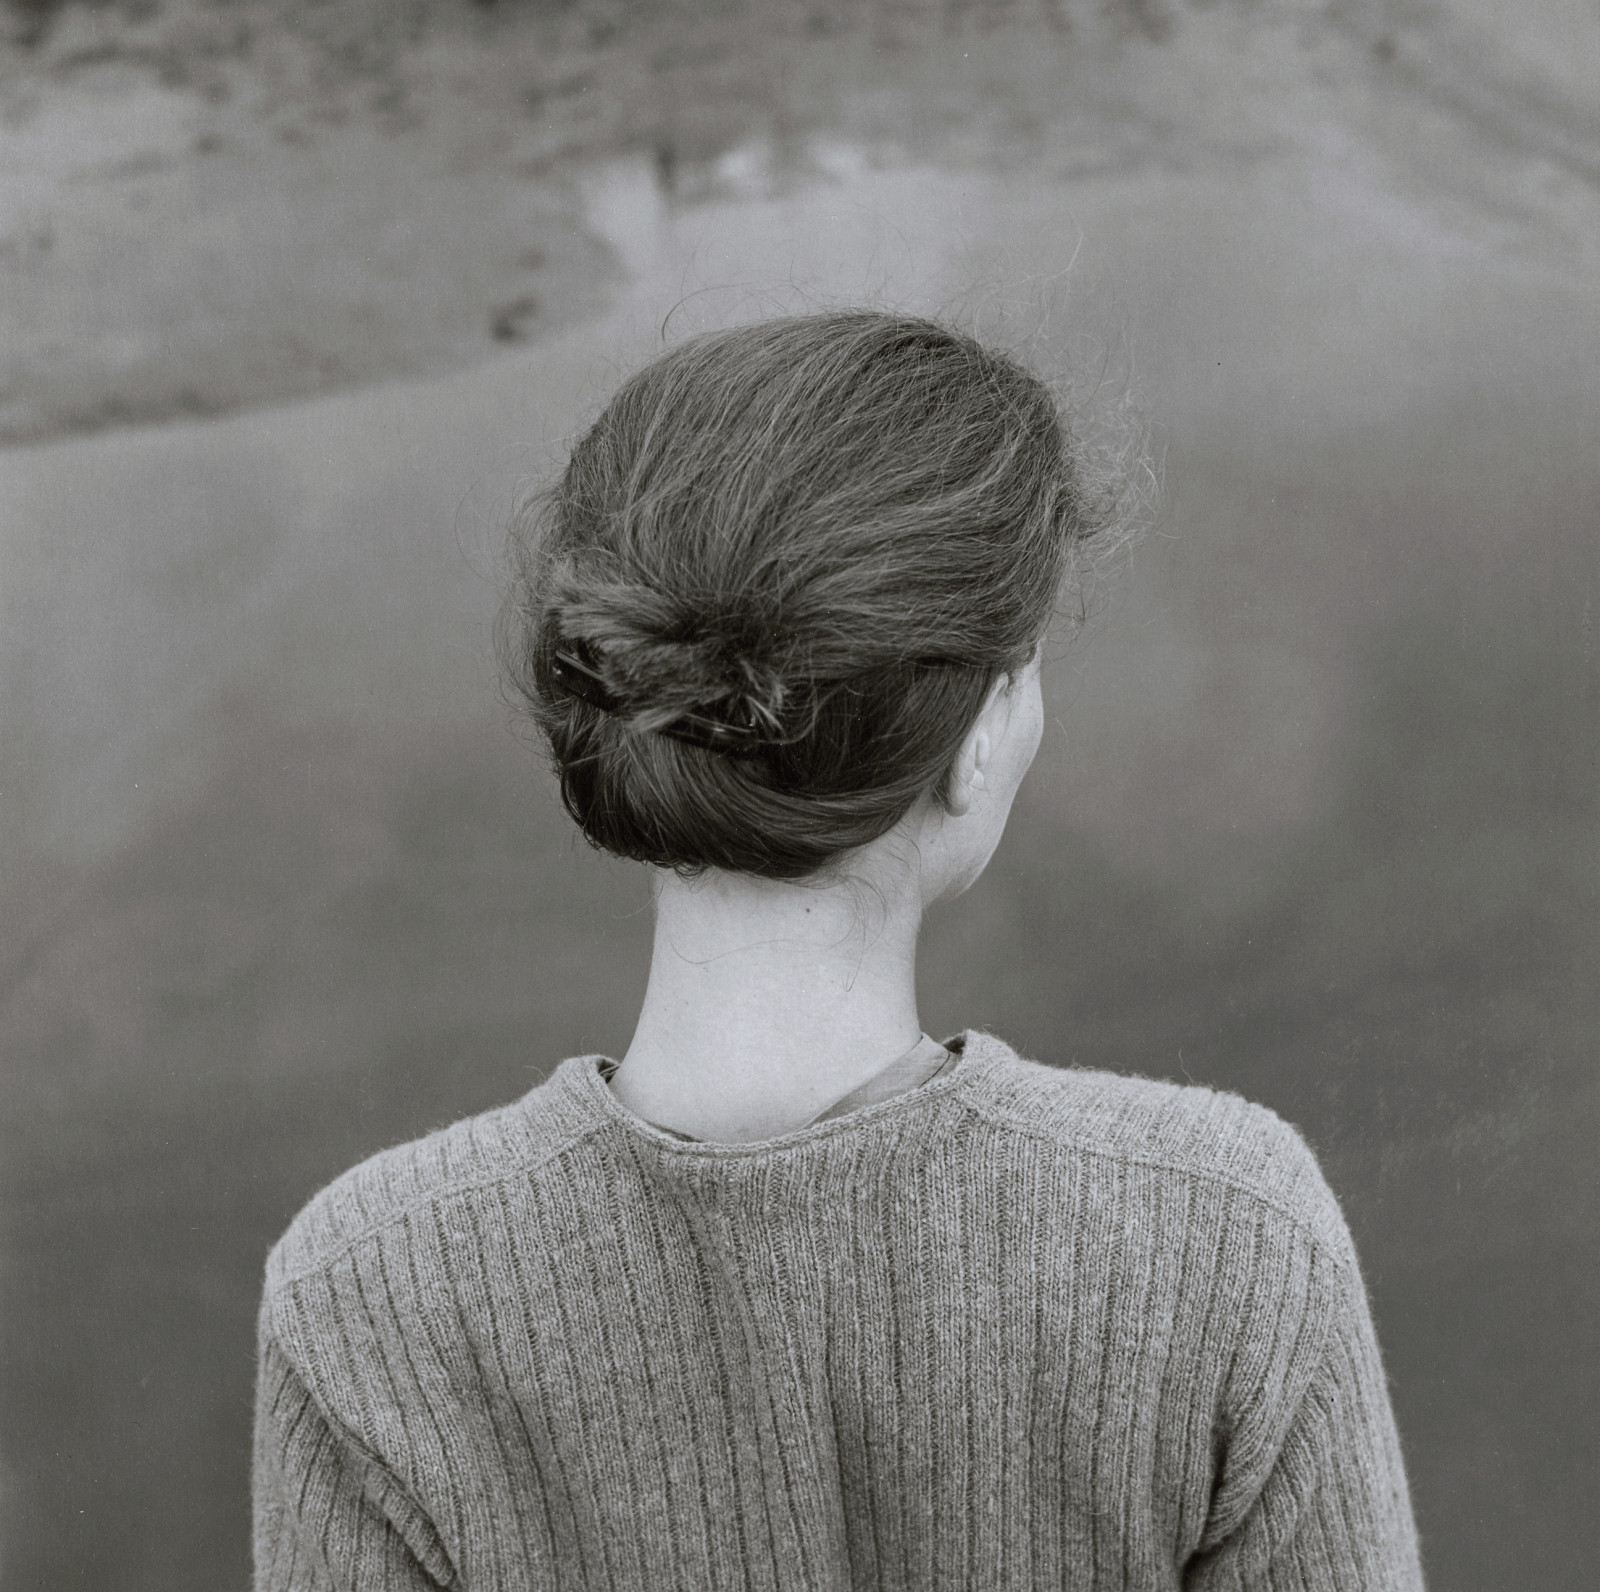 Edith, Chincoteague, Virginia, 1967